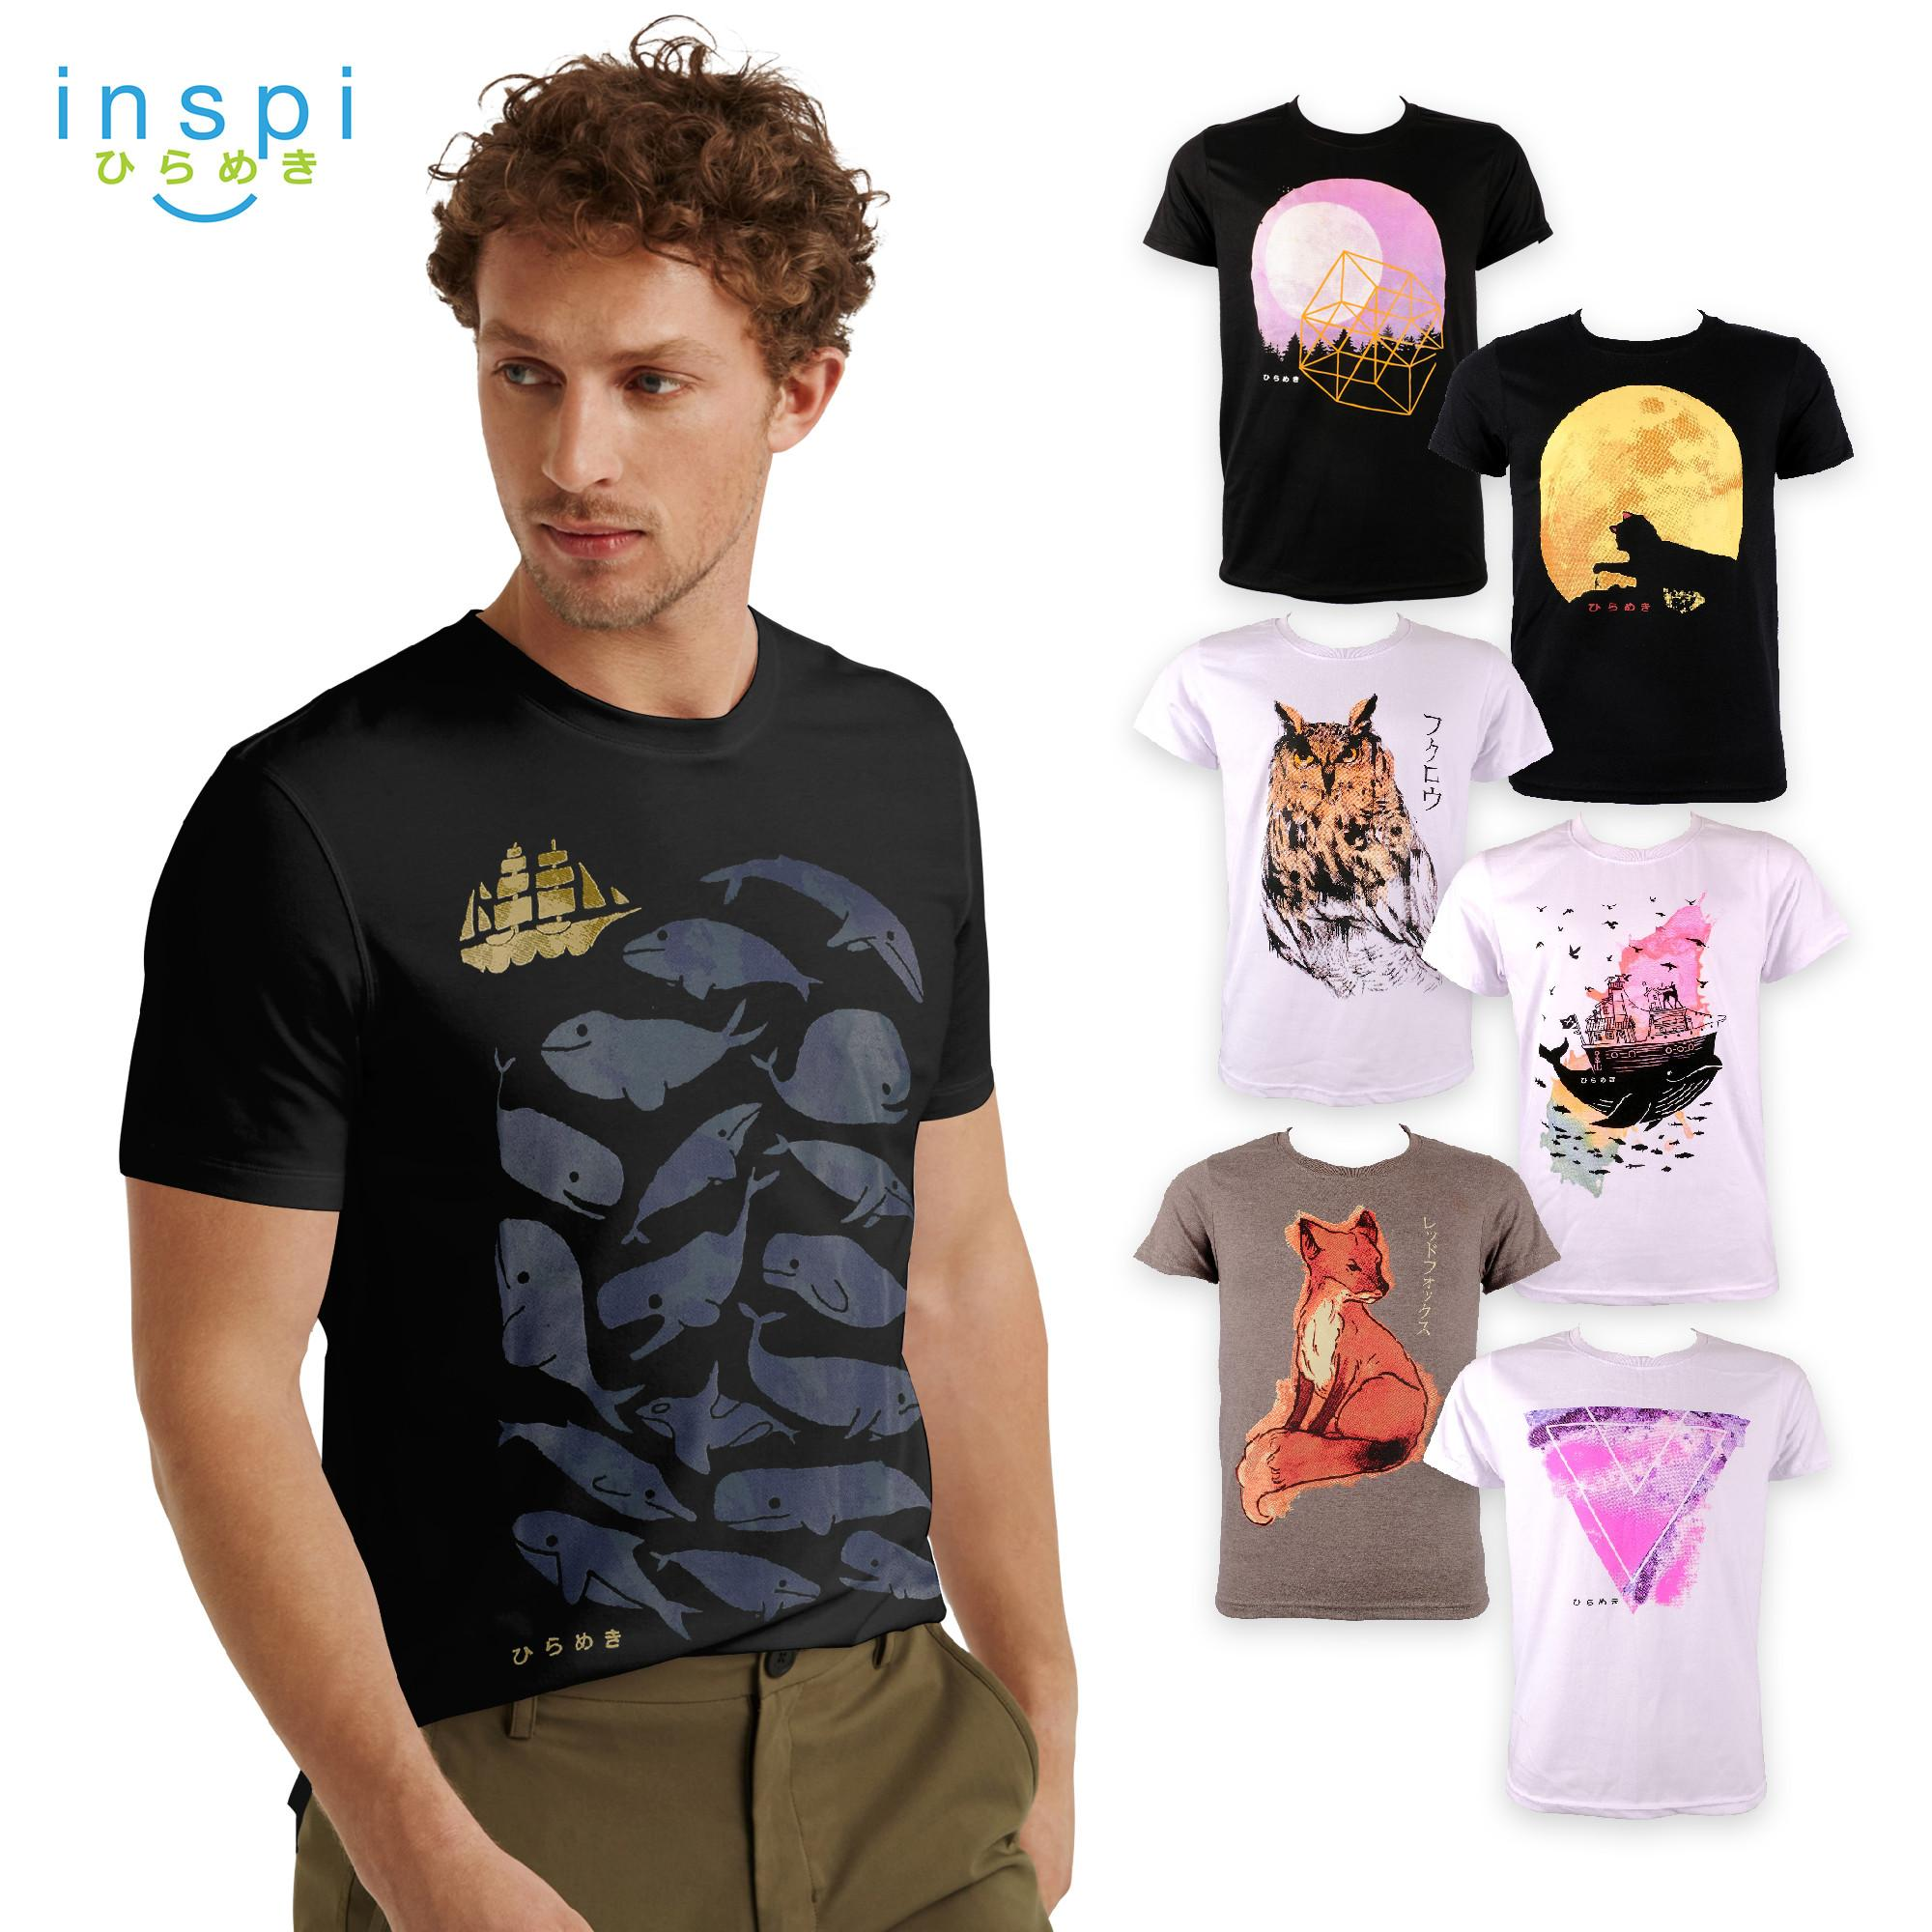 INSPI Tees Water Color Collection tshirt printed graphic tee Mens t shirt  shirts for men tshirts 5ddf05cd0405